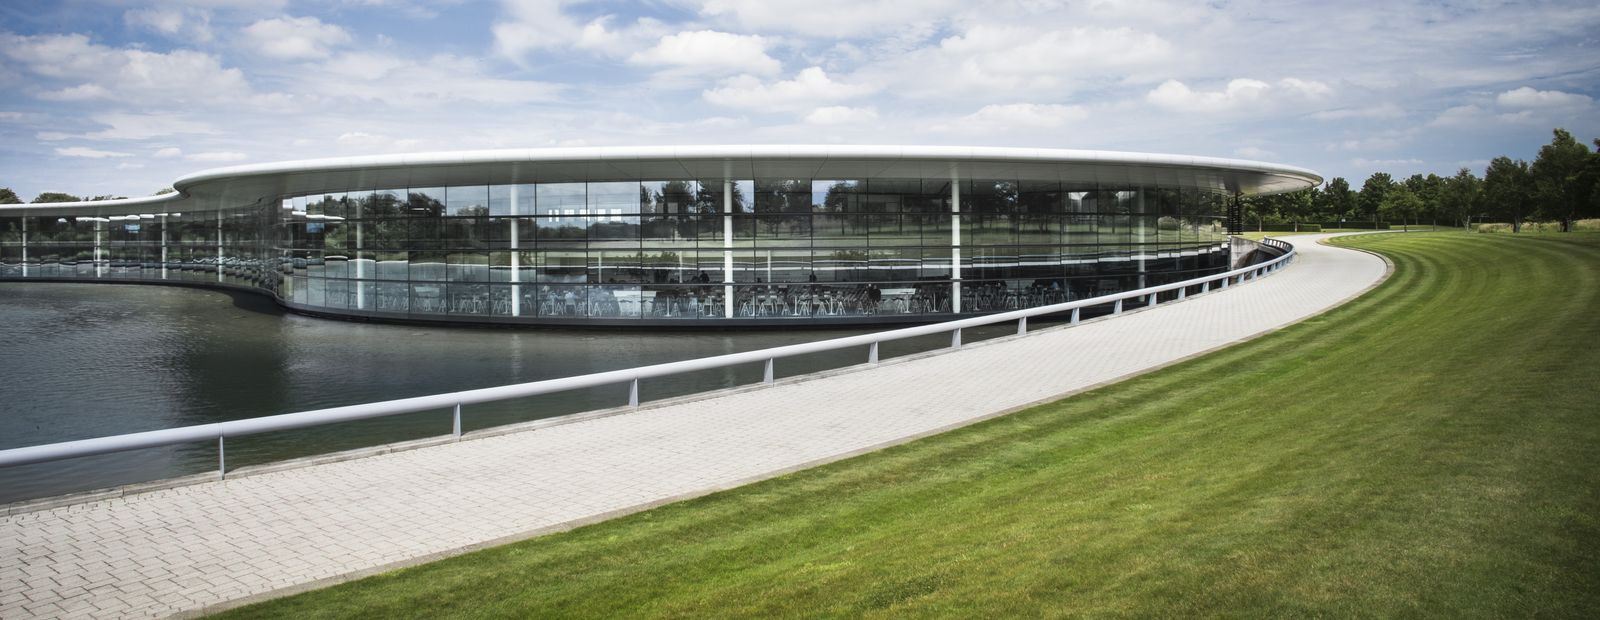 McLaren Racing statement on the F1 sustainability strategy announcement